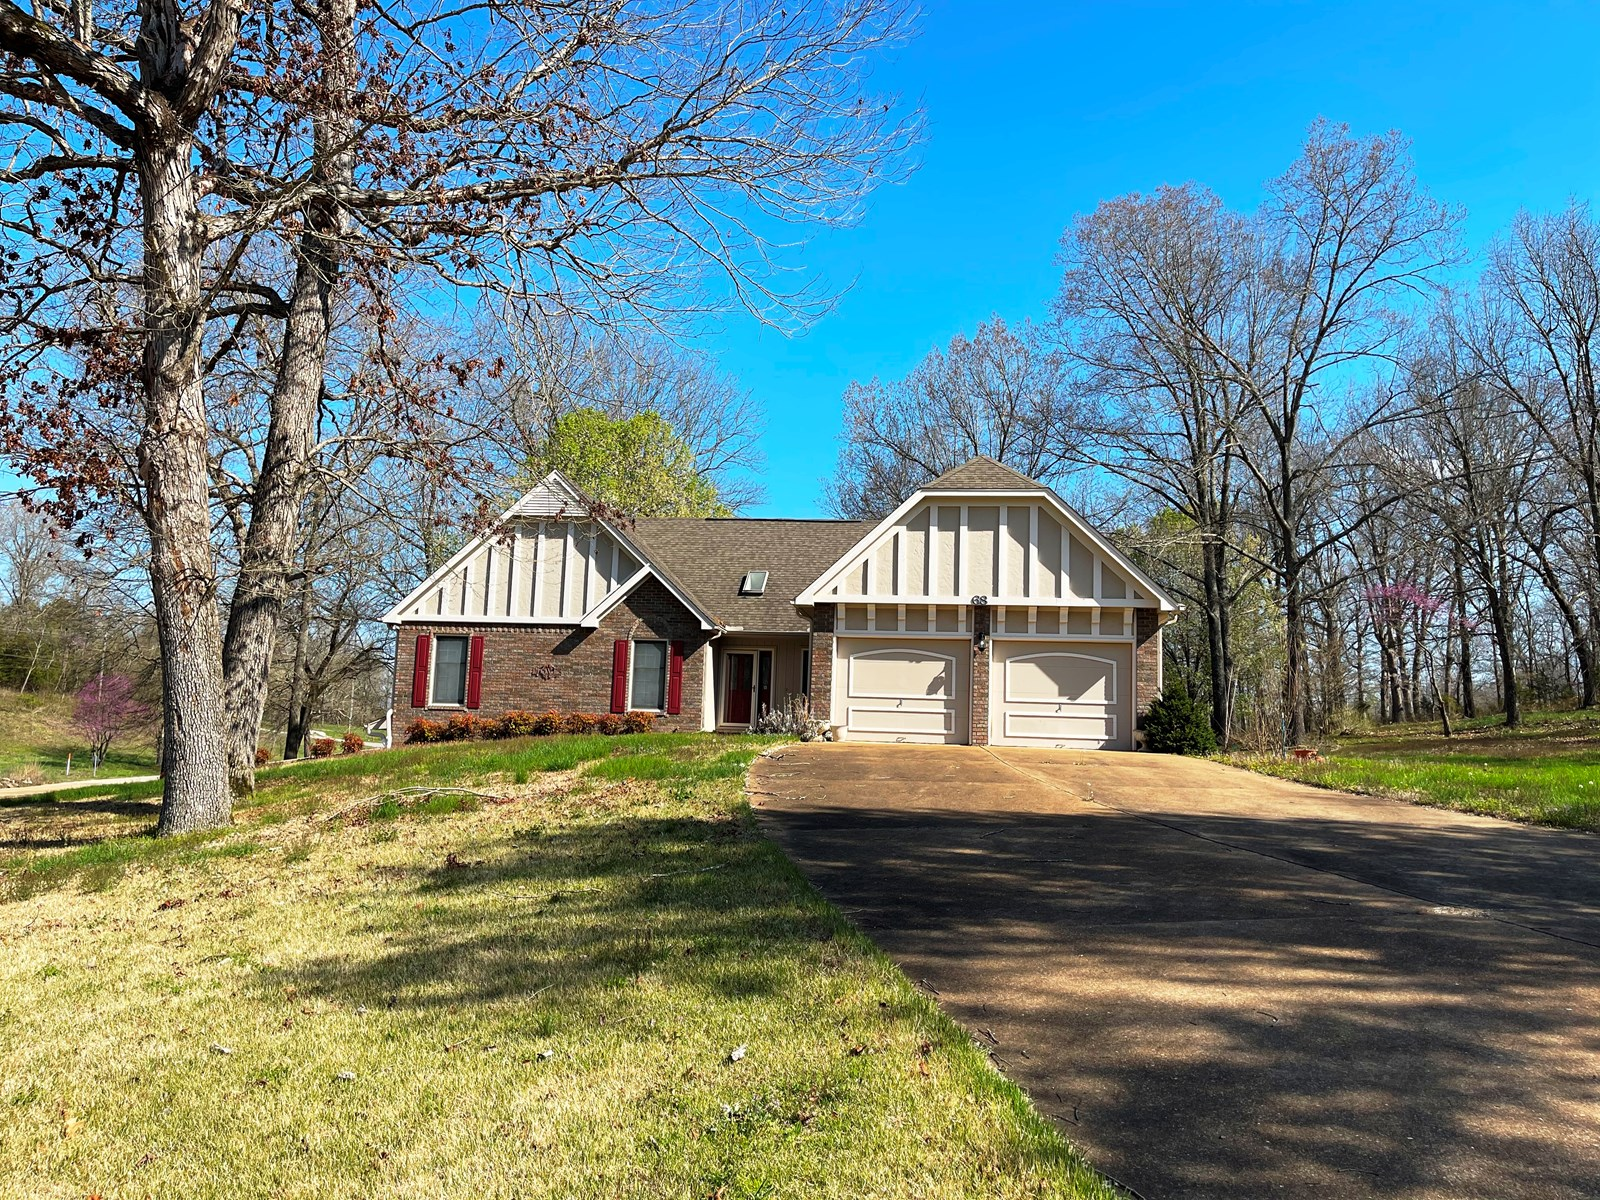 Home on Creeek with acreage for sale Ash Flat, AR